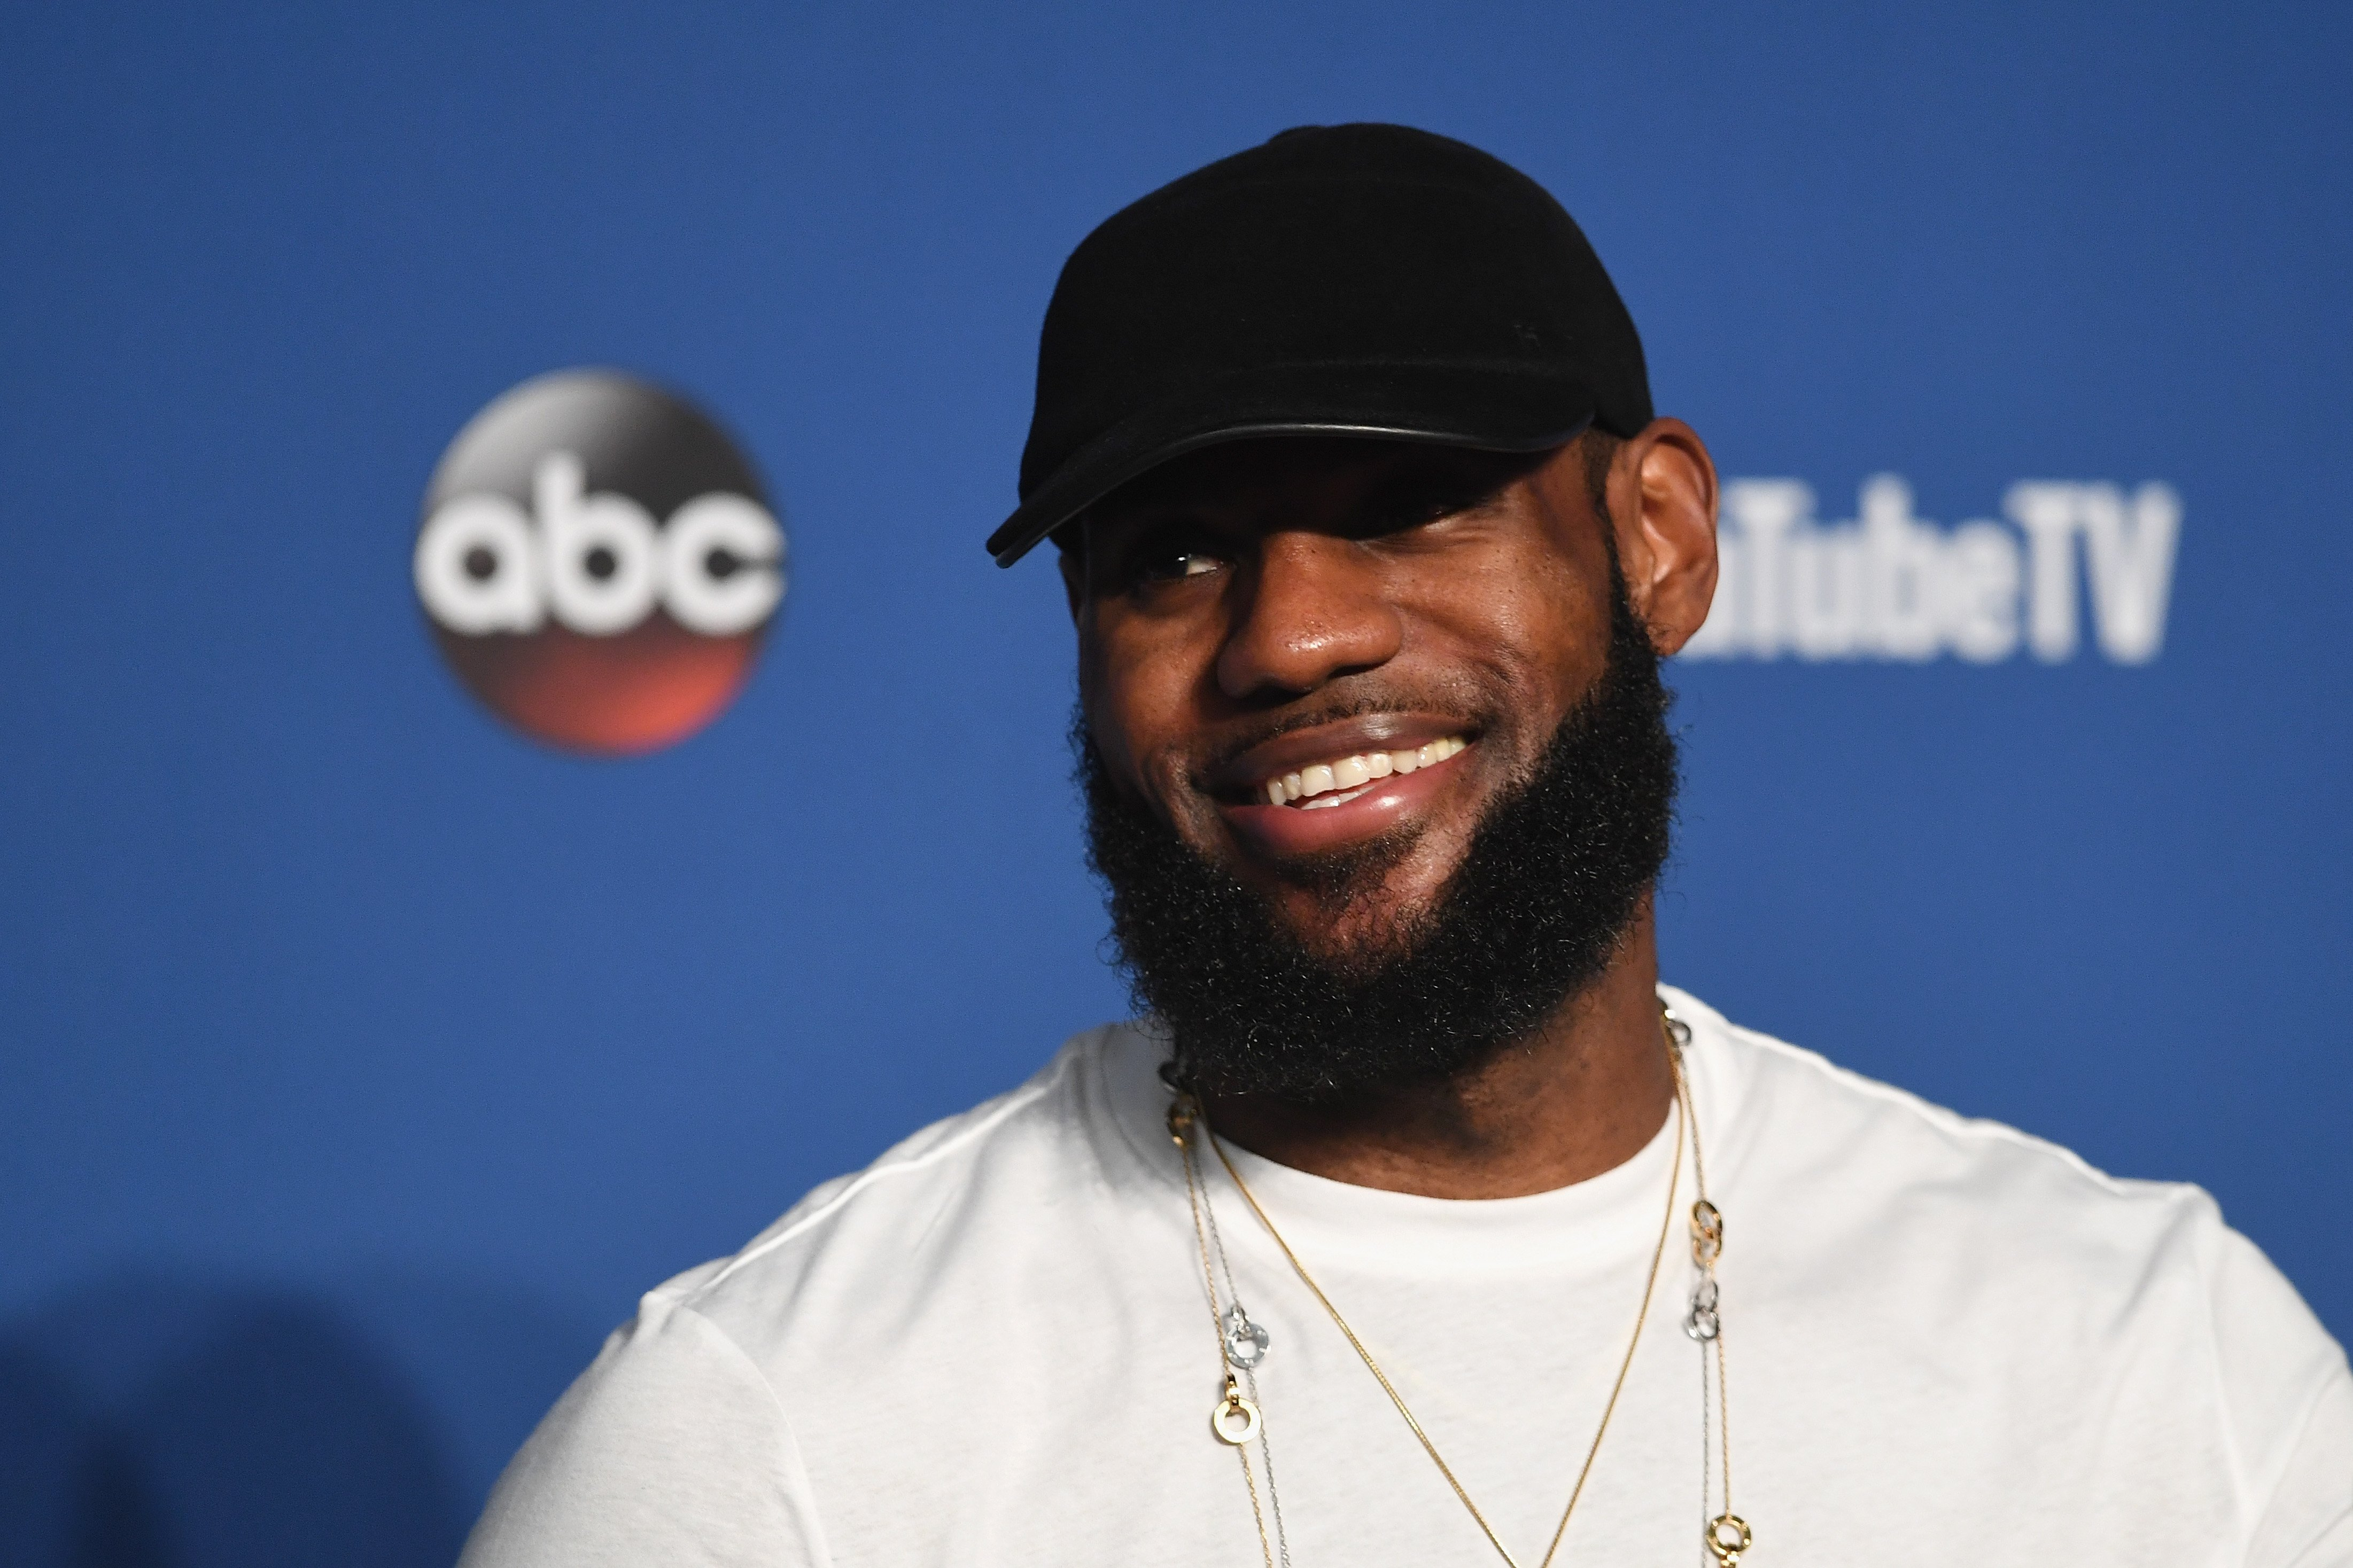 LeBron James after the fourth game in the 2018 NBA Finals in Cleveland, Ohio. | Photo: Getty Images